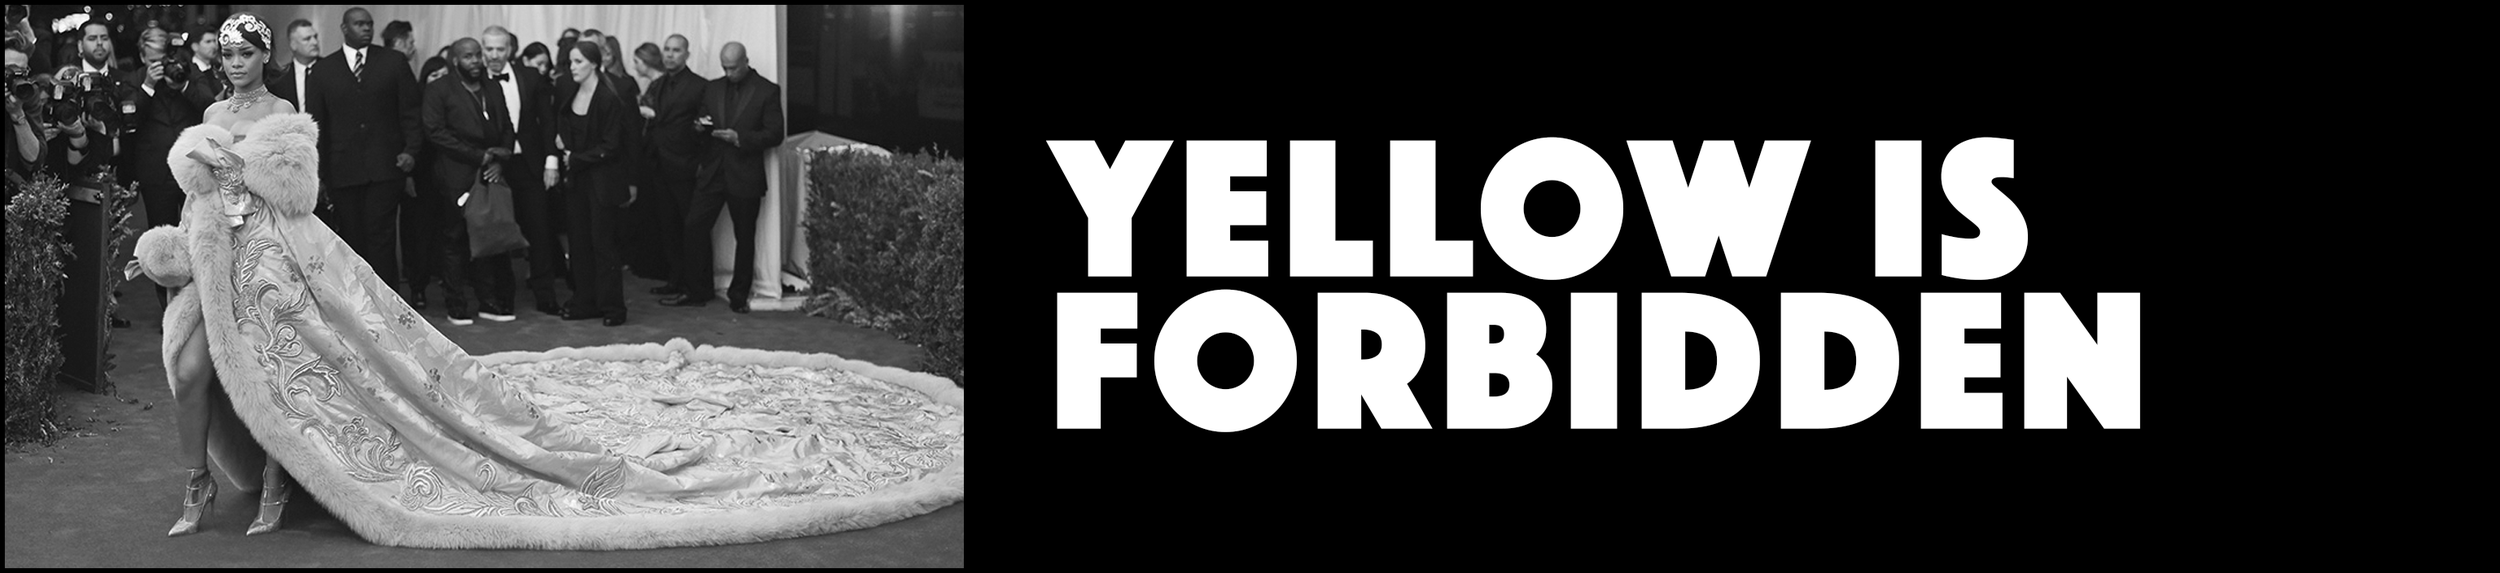 Yellow Is Forbidden.png